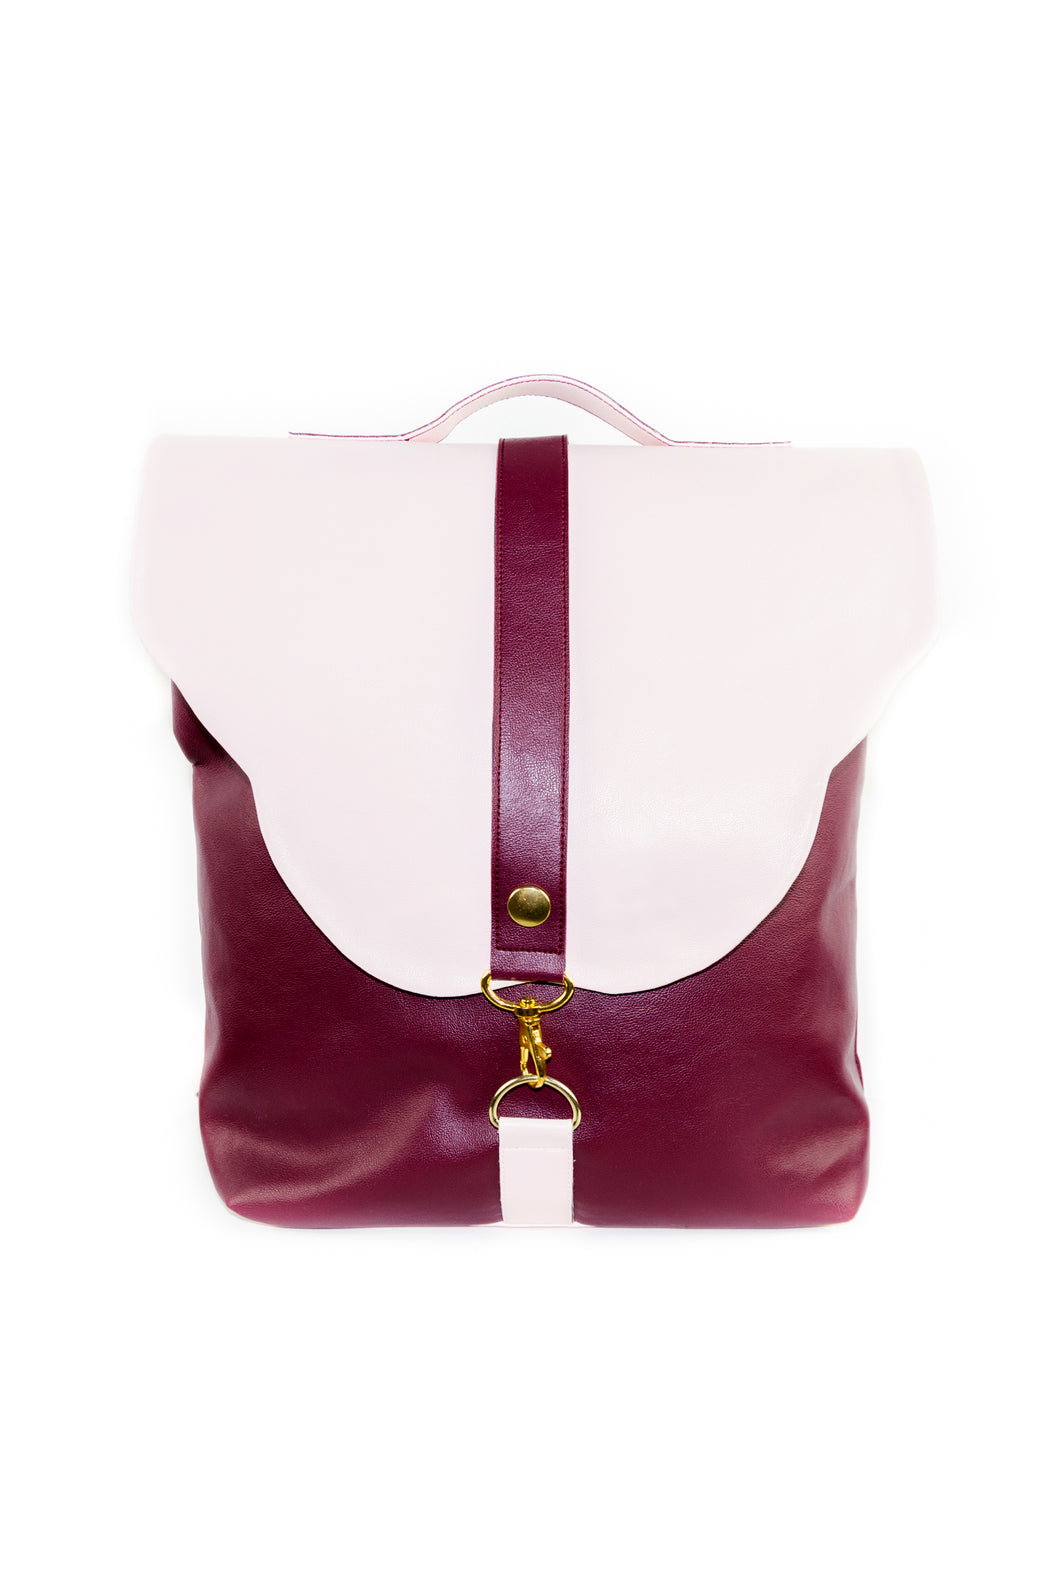 "Backpack ""MARIPOSA 2"" – Bordeaux & Pearl Pink"